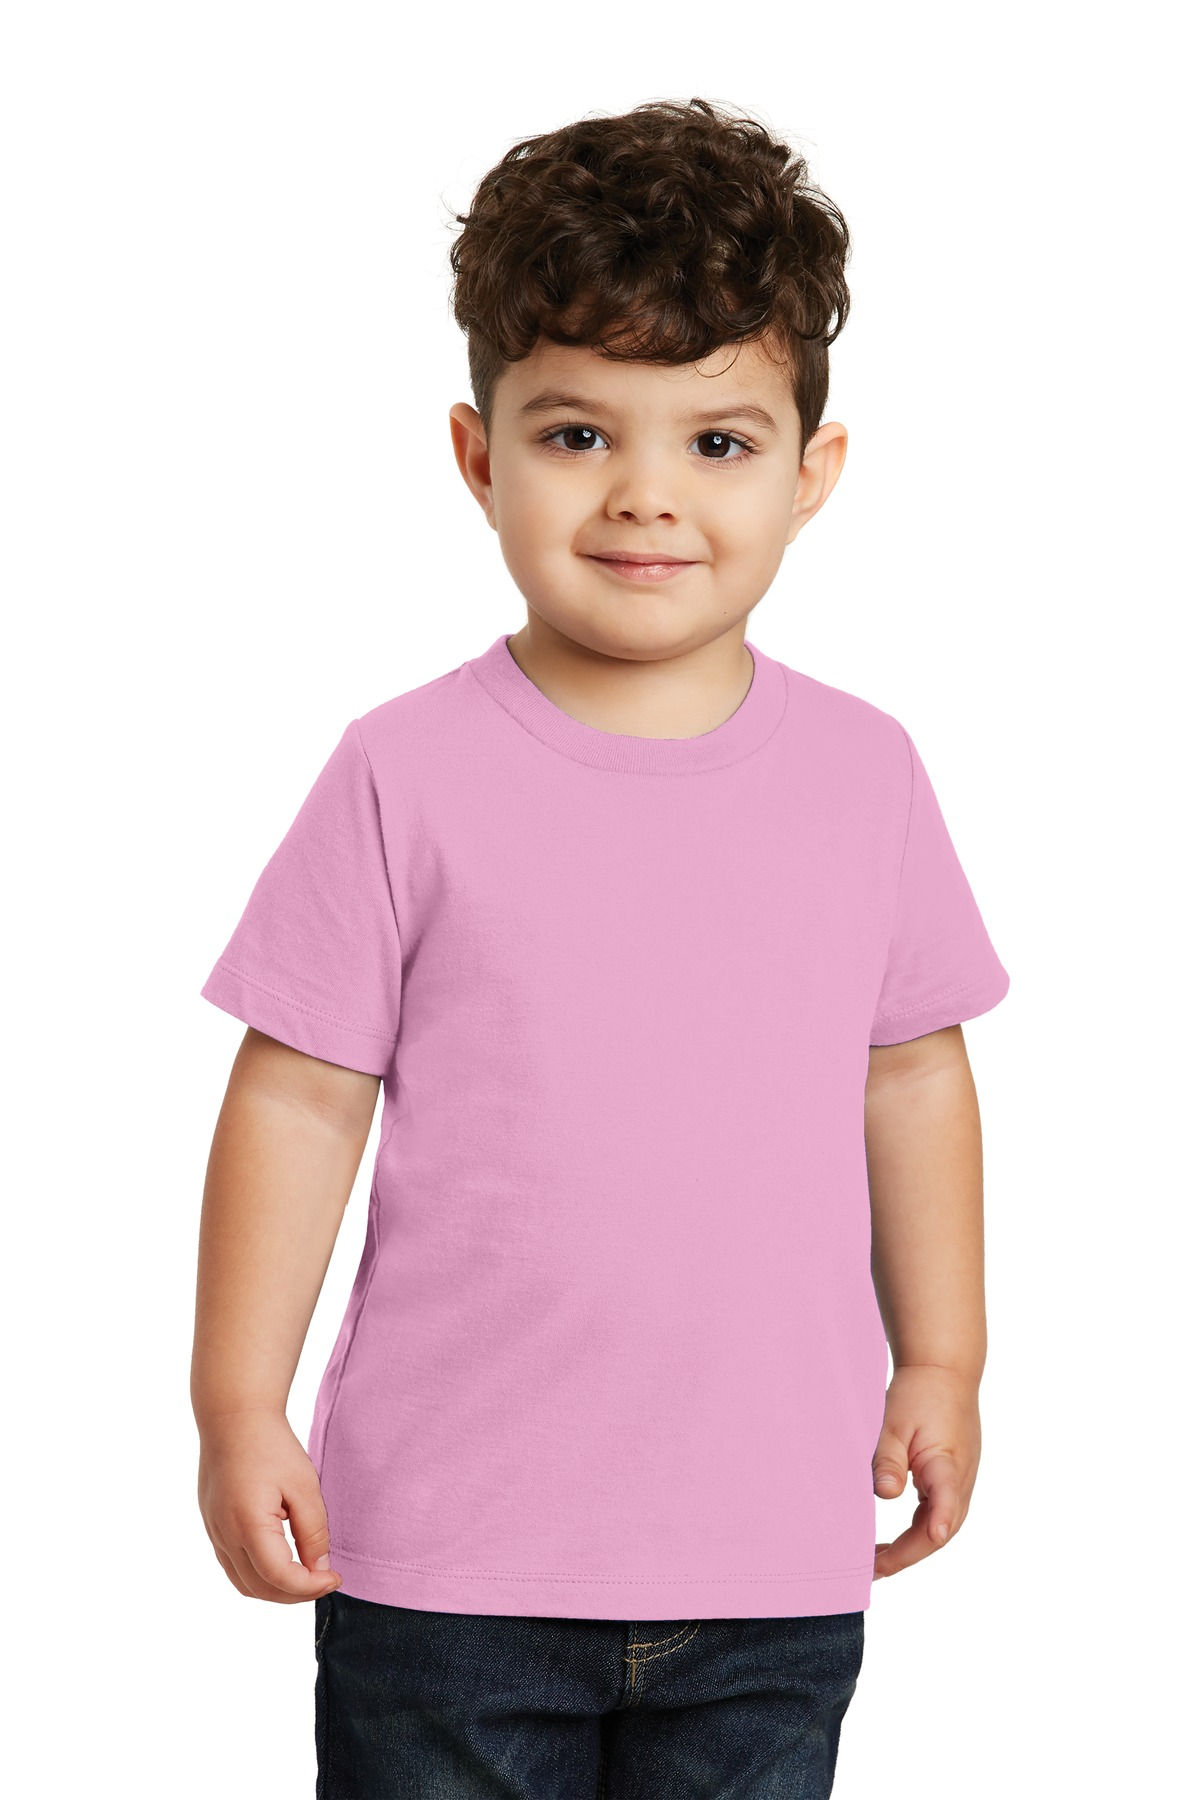 Port & Company  ®  Toddler Fan Favorite Tee. PC450TD - Candy Pink